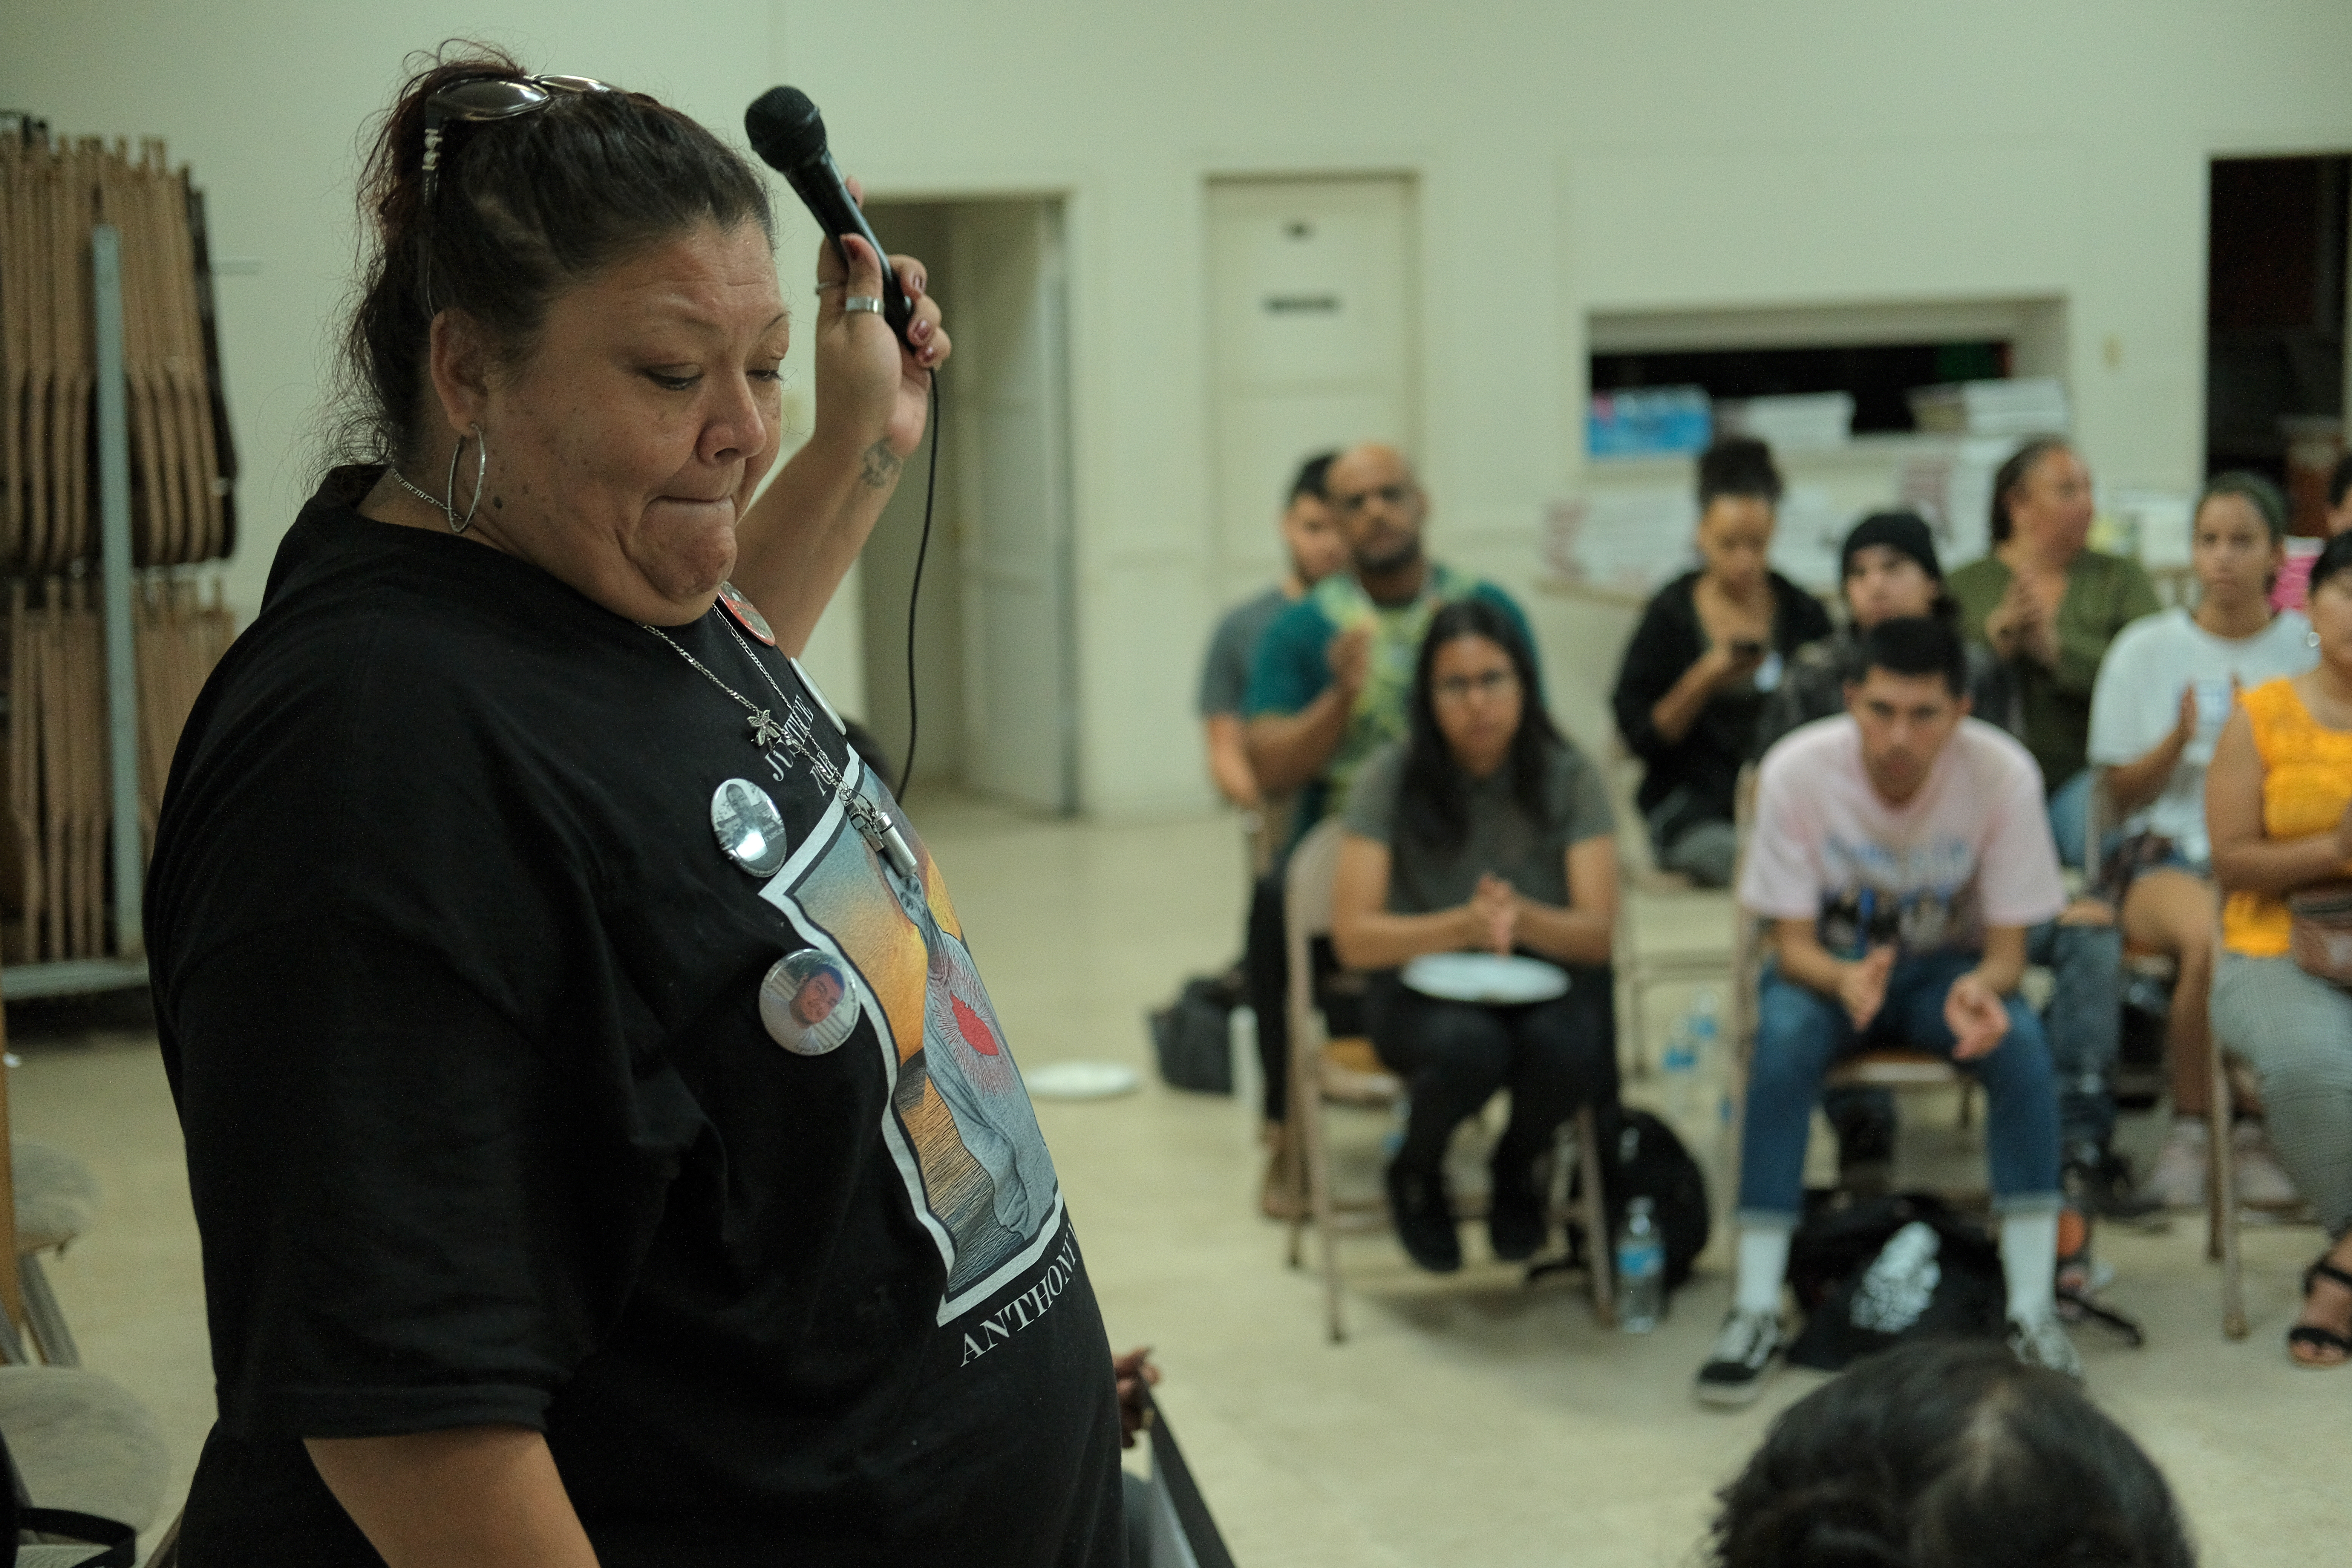 Above: Lisa Vargas wraps up a personal talk at the North Long Beach Methodist Church on August 28, 2019 regarding the deputy-involved shooting of her late son, Anthony Vargas. He, 21, was killed in August 2018. Photo by Michael Lozano.